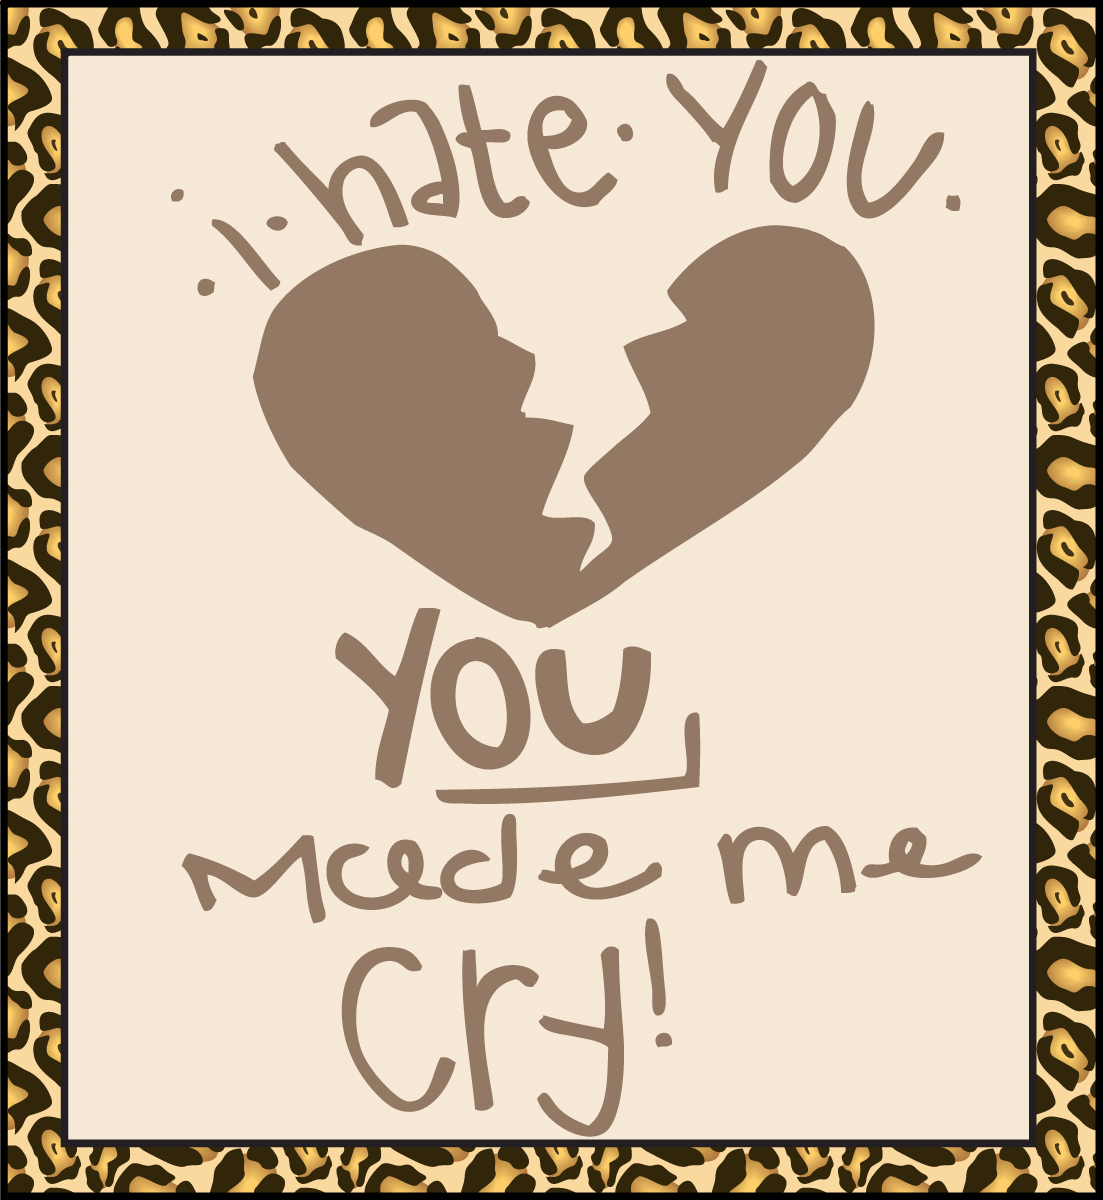 I Hate You You Made Me Cry Message Image